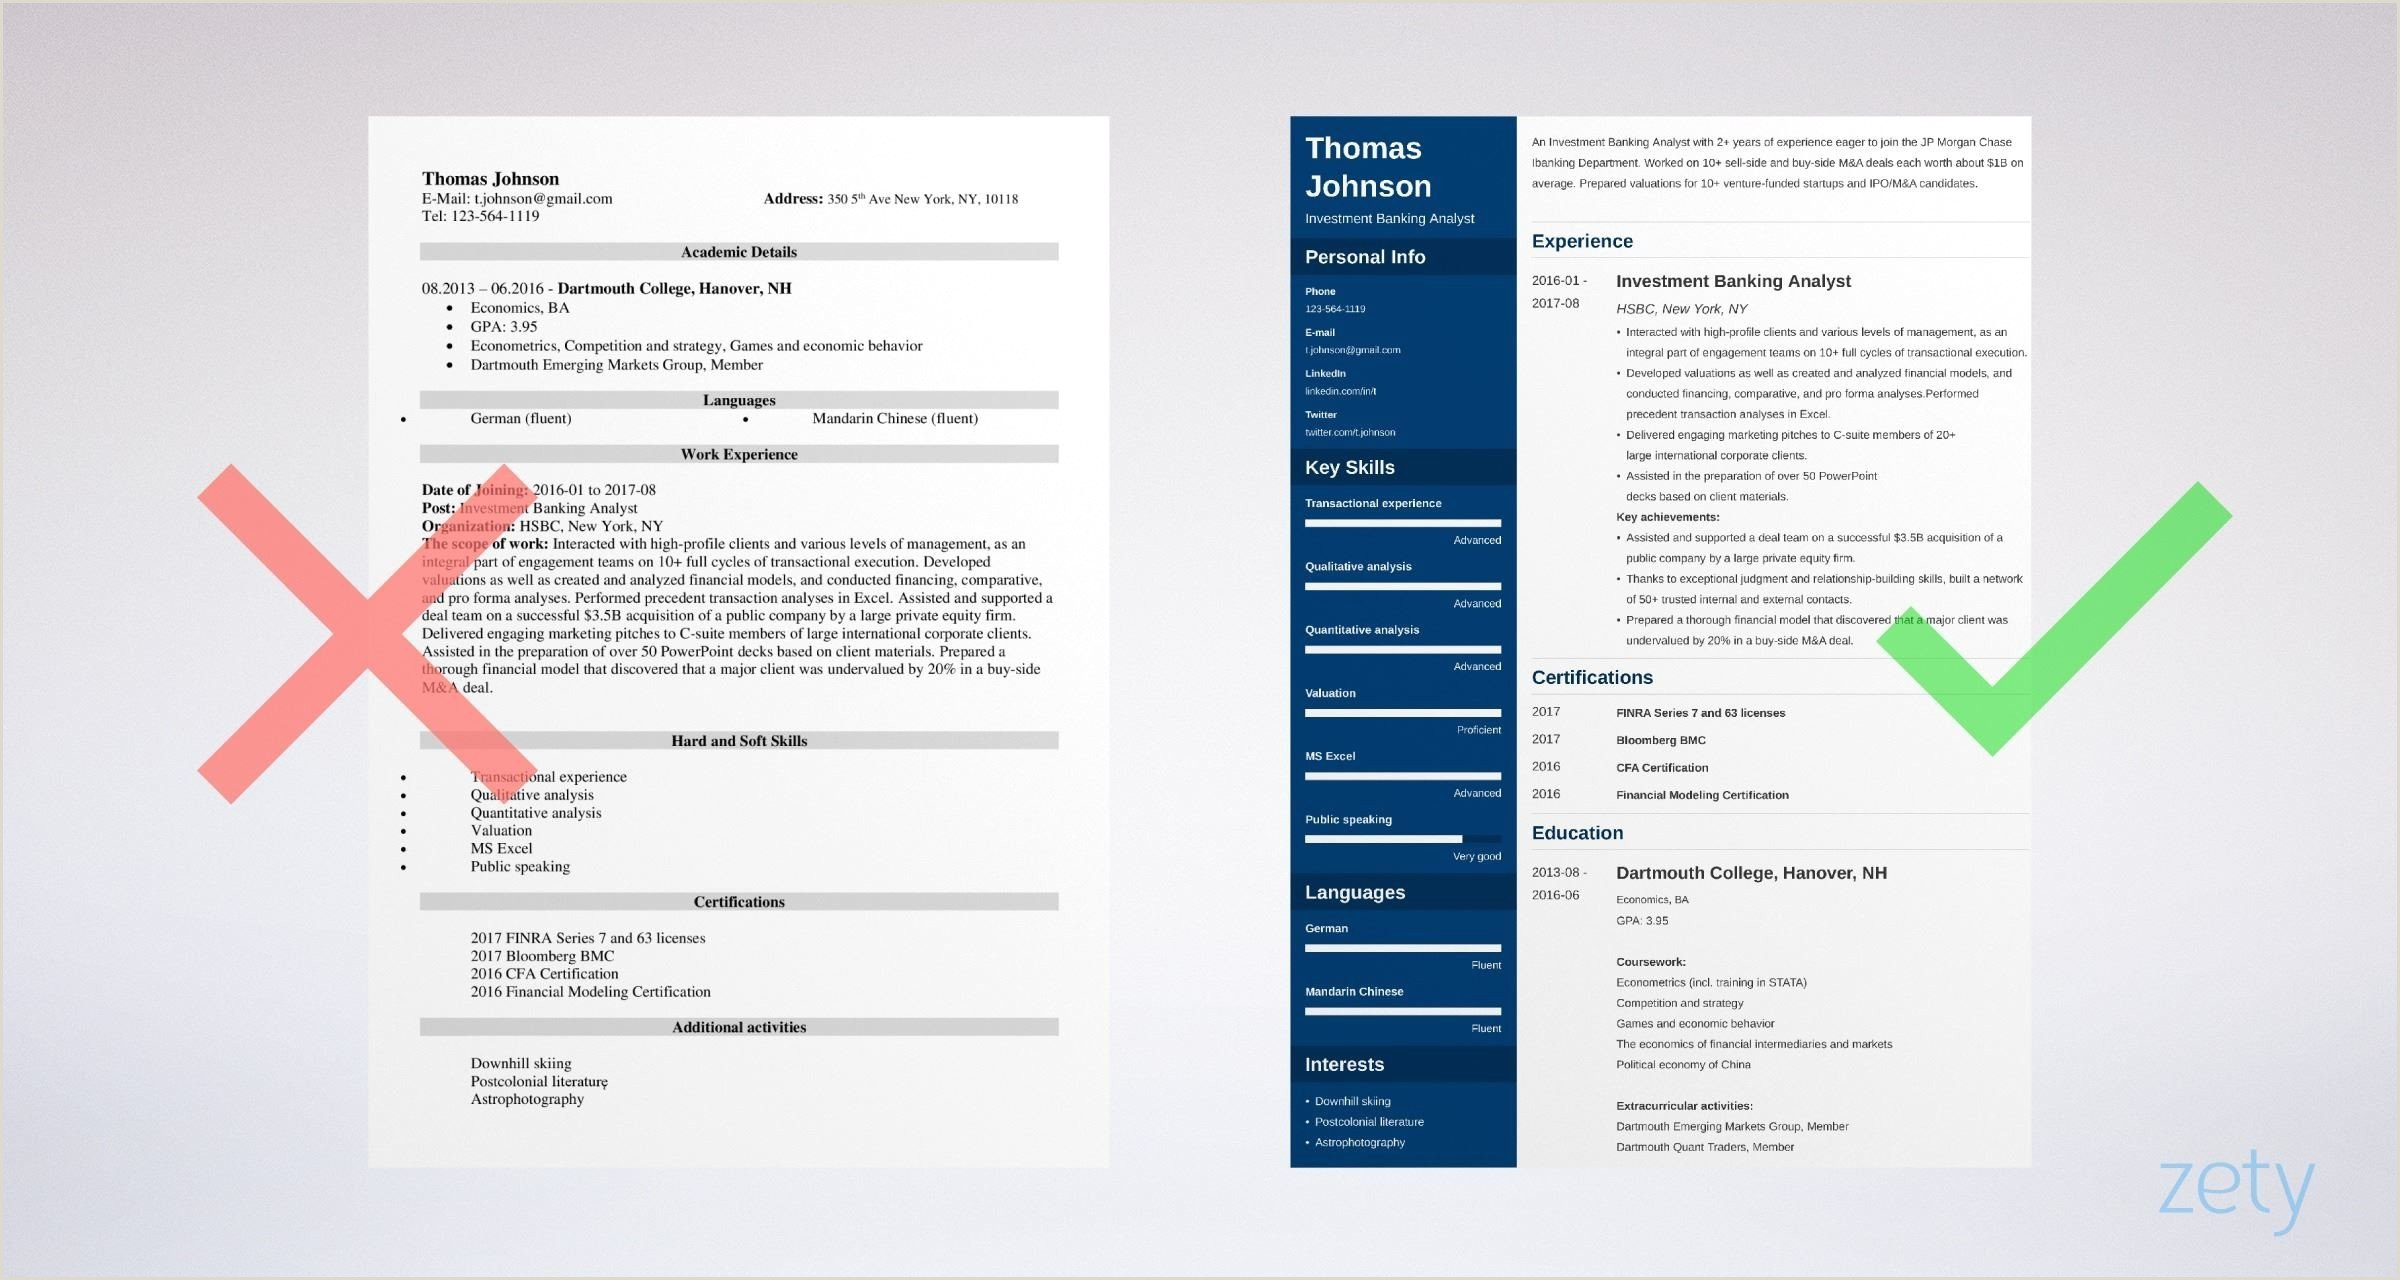 Resume format for Bank Job Fresher Pdf Investment Banking Resume Sample and Writing Guide [20